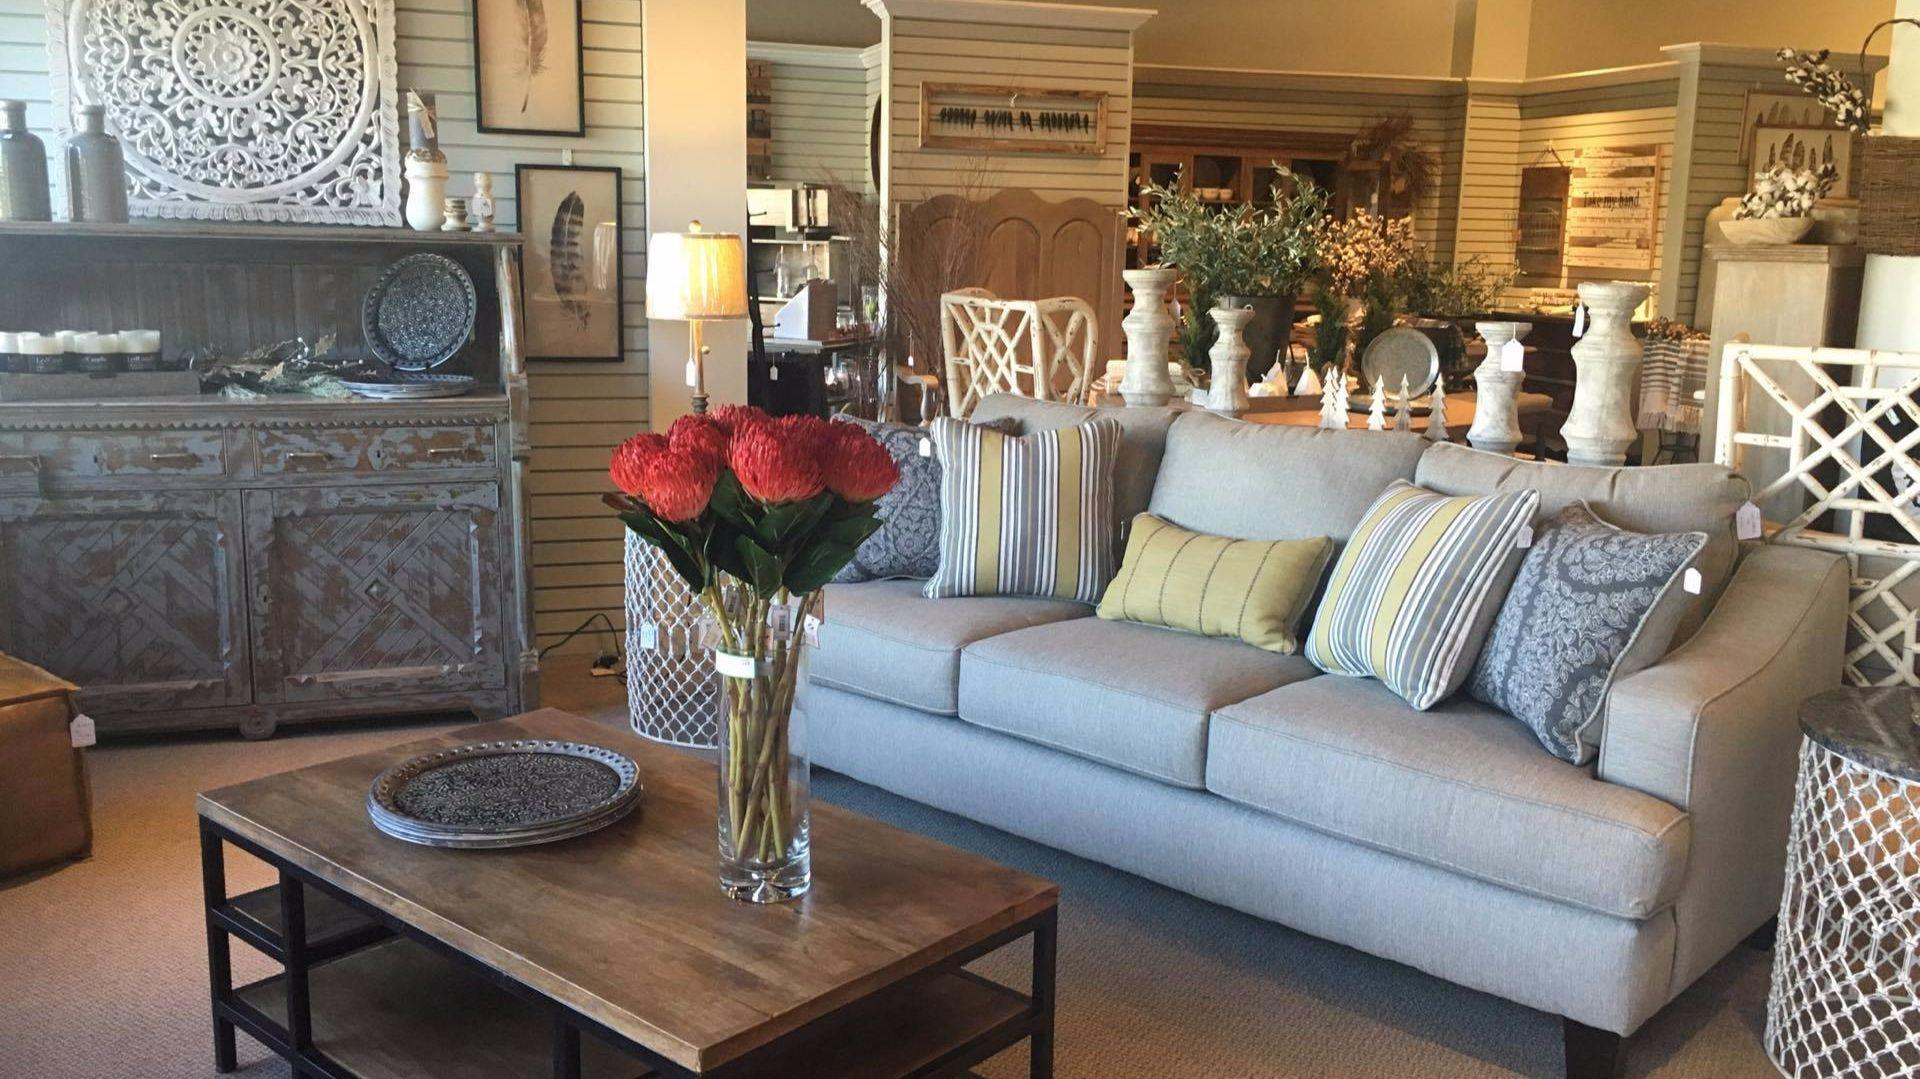 Home Furnishings Store Belle Patri Opens Second Location In Columbia    Howard County Times